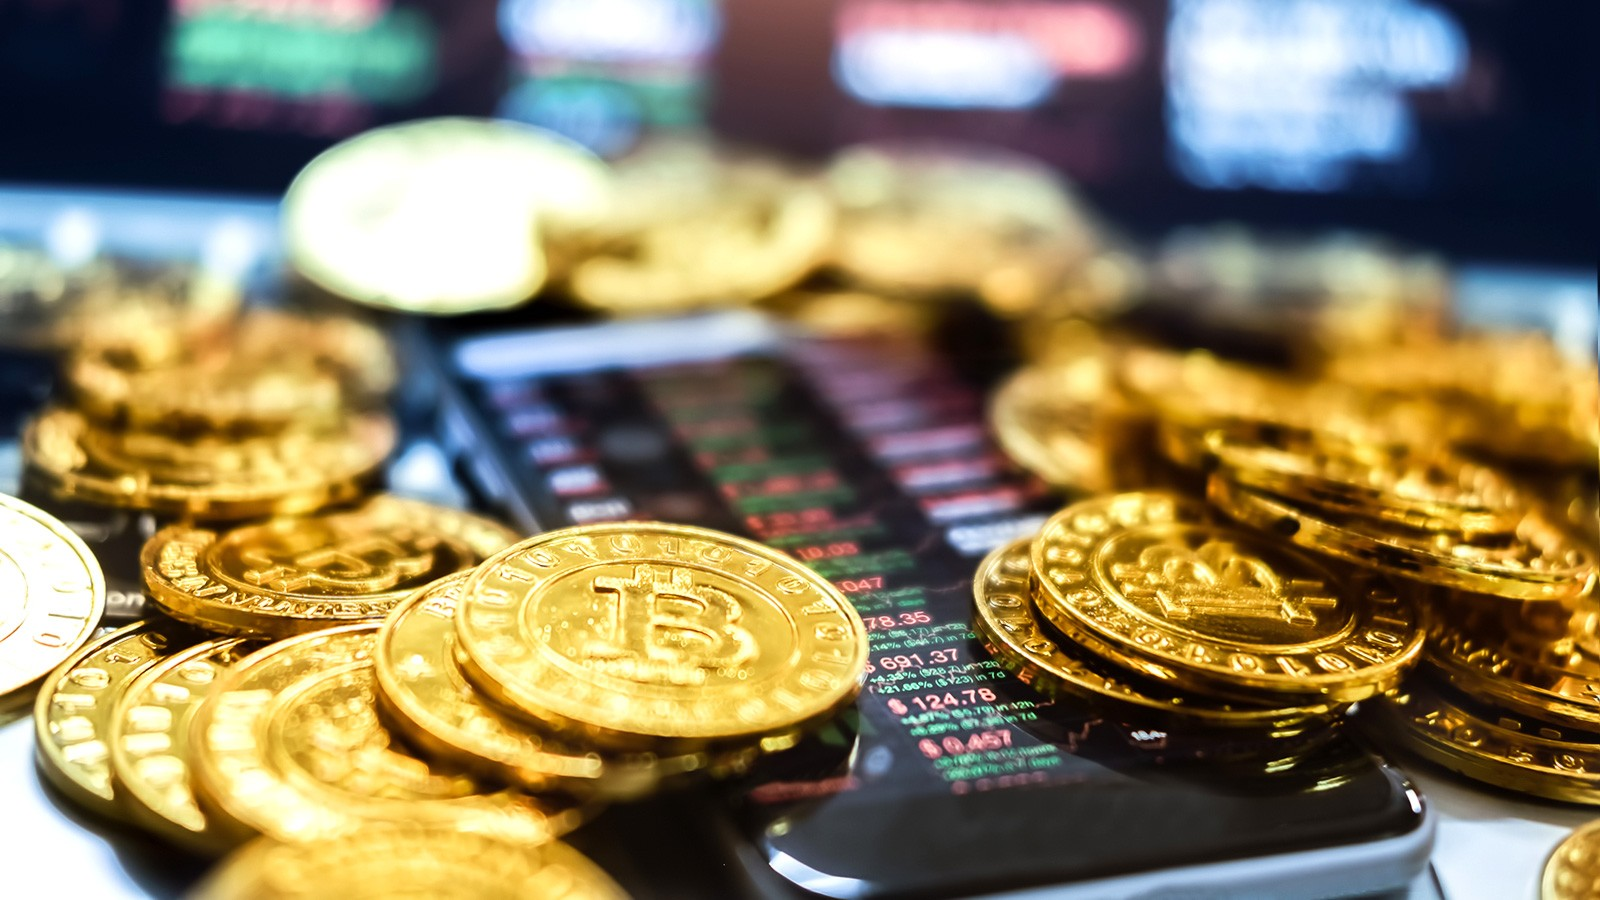 Gold Bitcoins ( btc ) is digital cryptocurrency